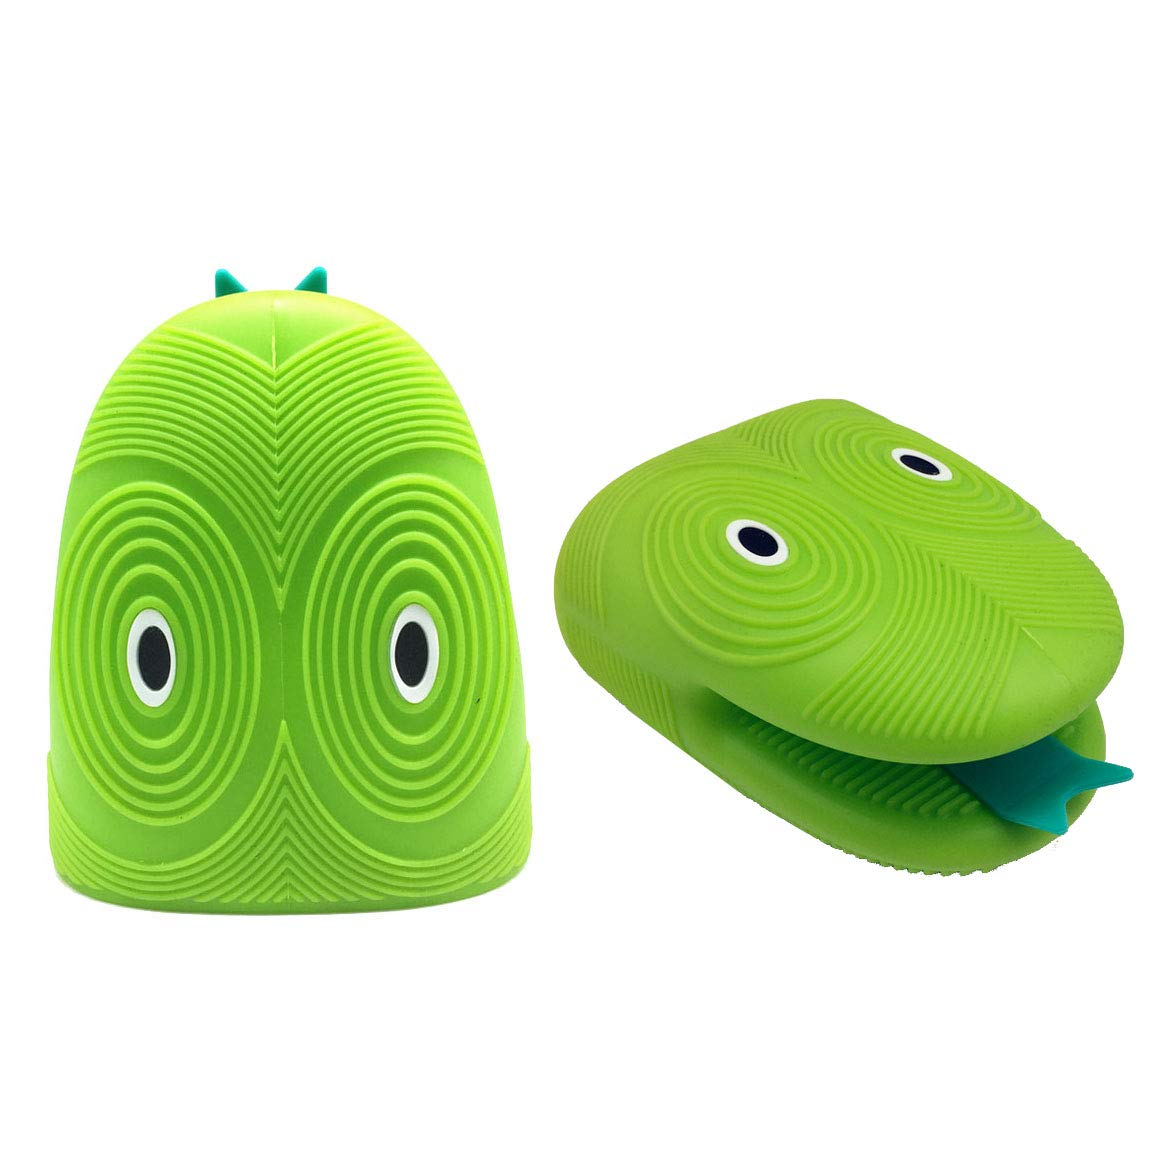 Heat Resistant Kitchen Mitts, Cartoon Snake Head Silicone Oven Gloves Clips Microwave Novelty Kitchenware (2 Pcs)